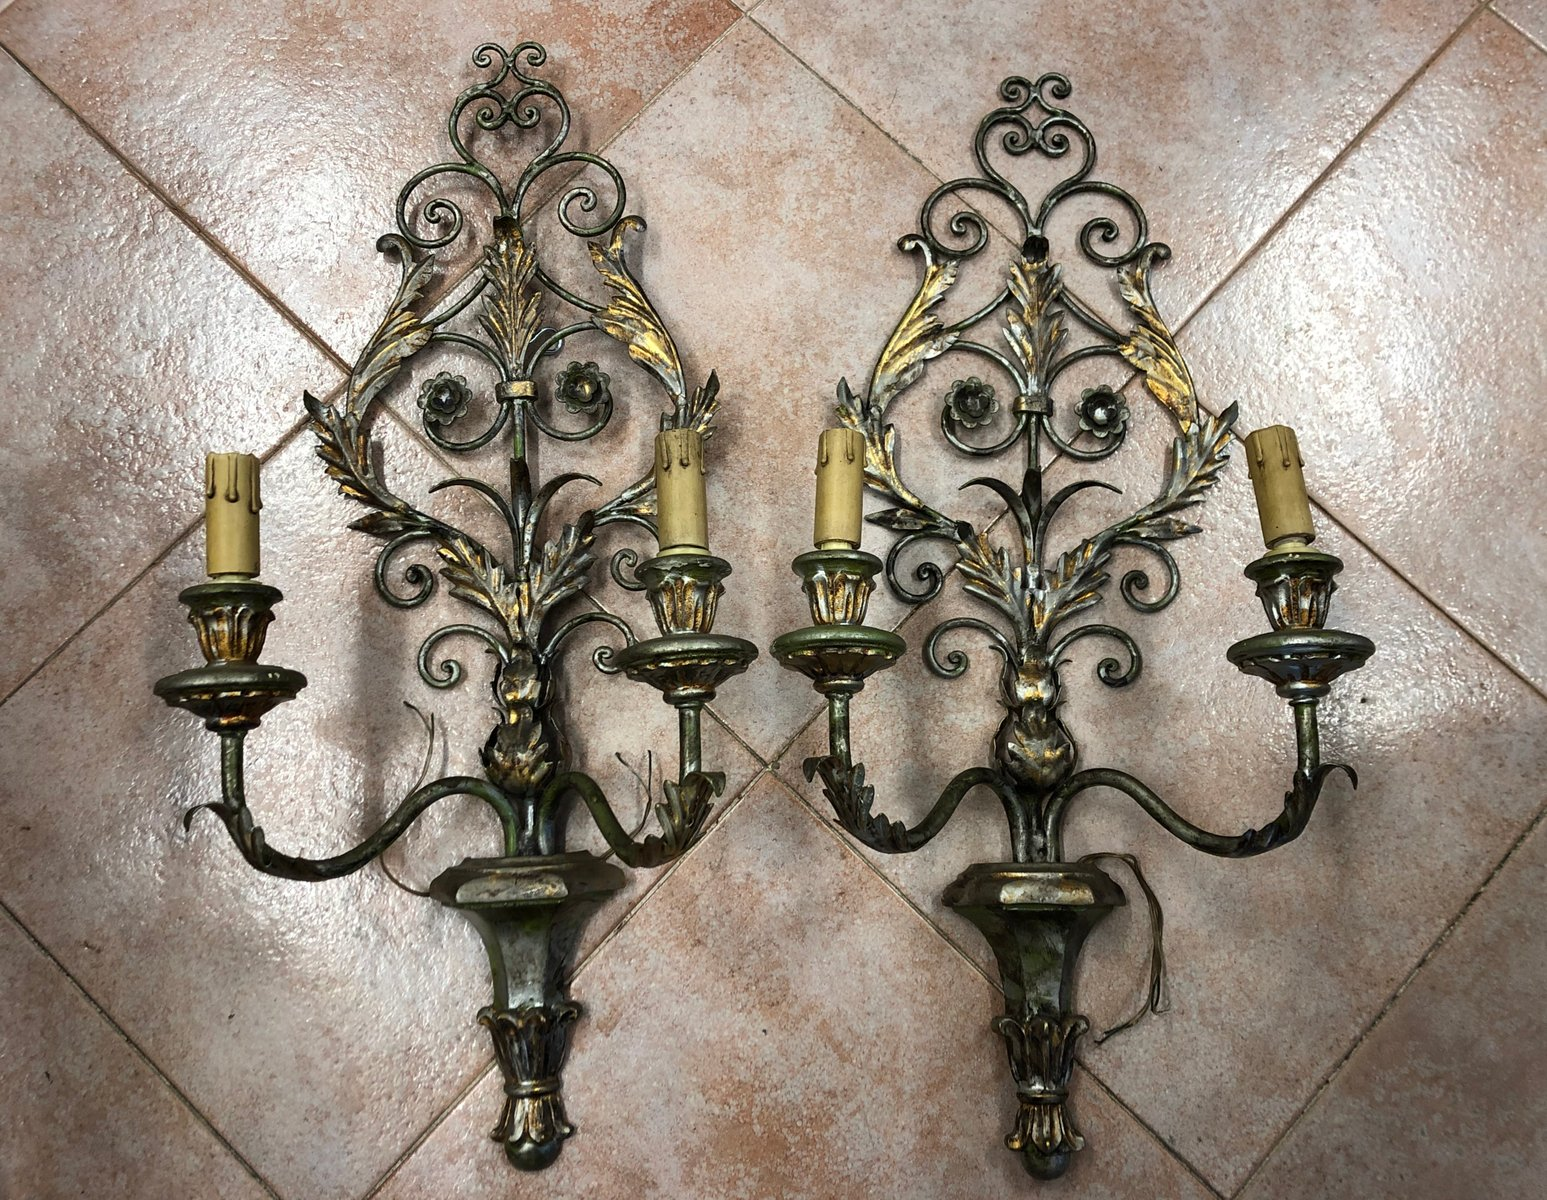 Antique Lacquered Wood Wrought Iron Wall Lights Set Of 2 For Sale At Pamono